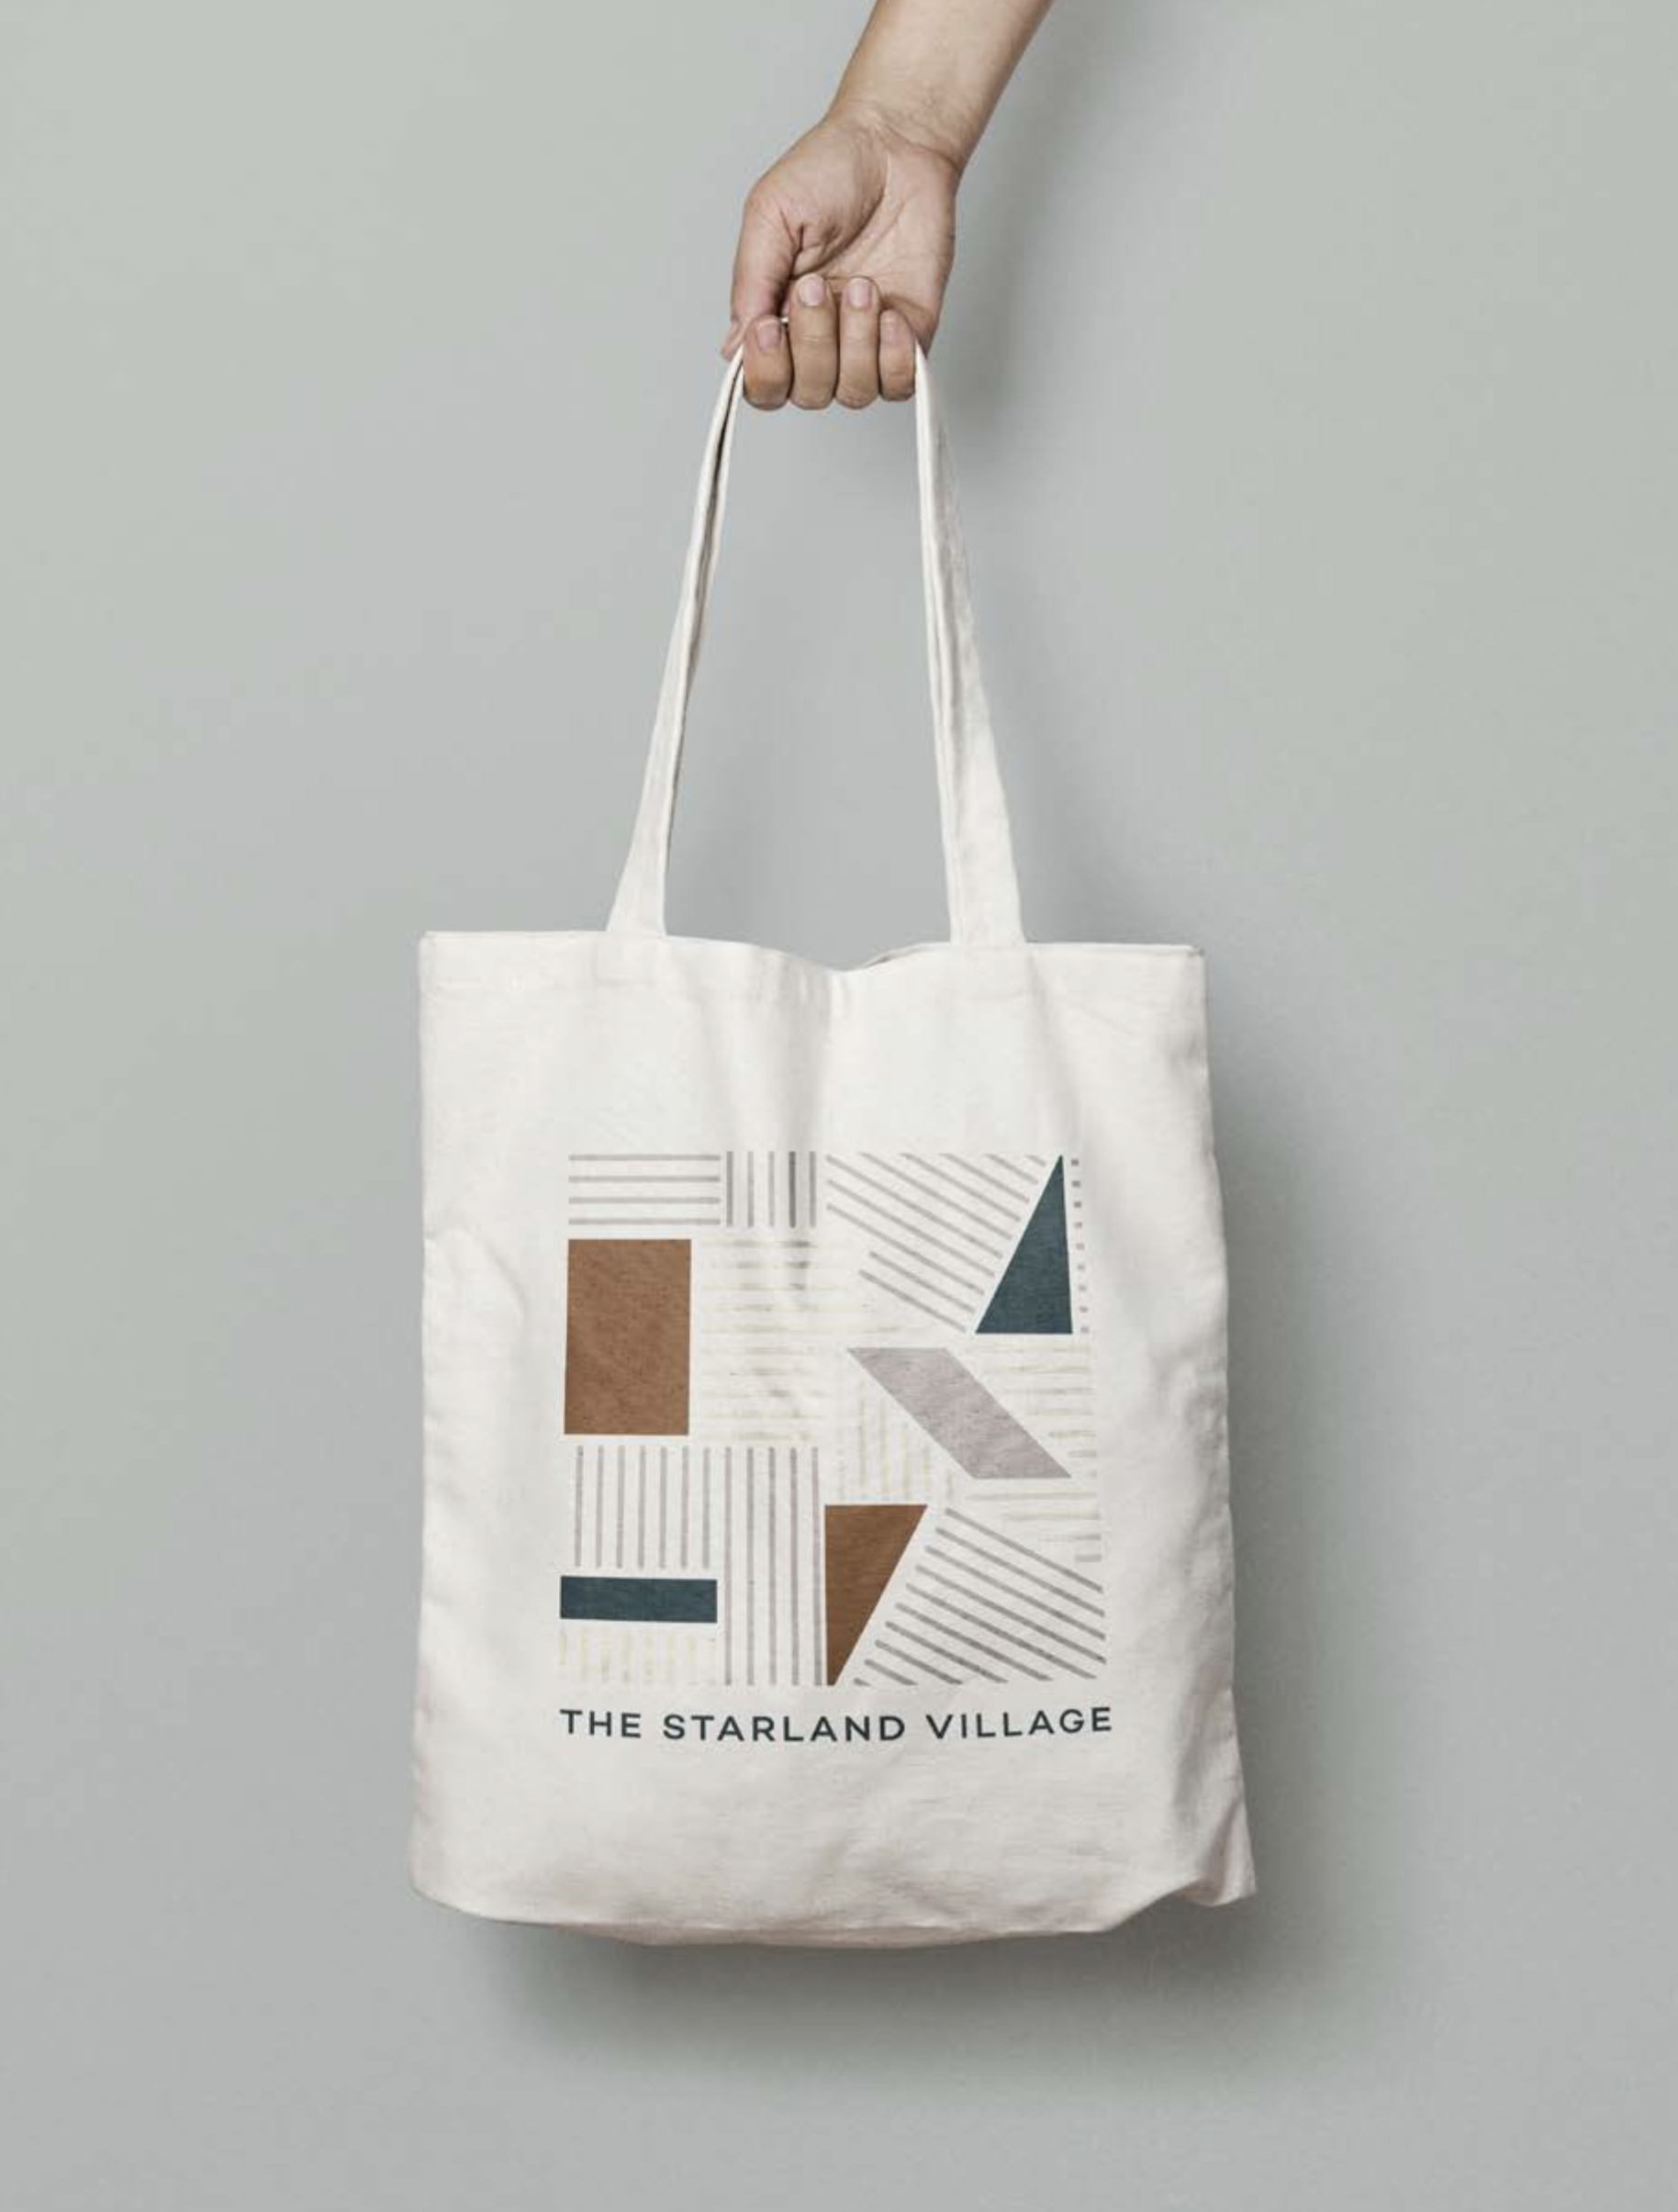 Flourish-Collaborative-Branding-Agency-Savannah-The-Starland-Village-Development-Tote-Bag.png